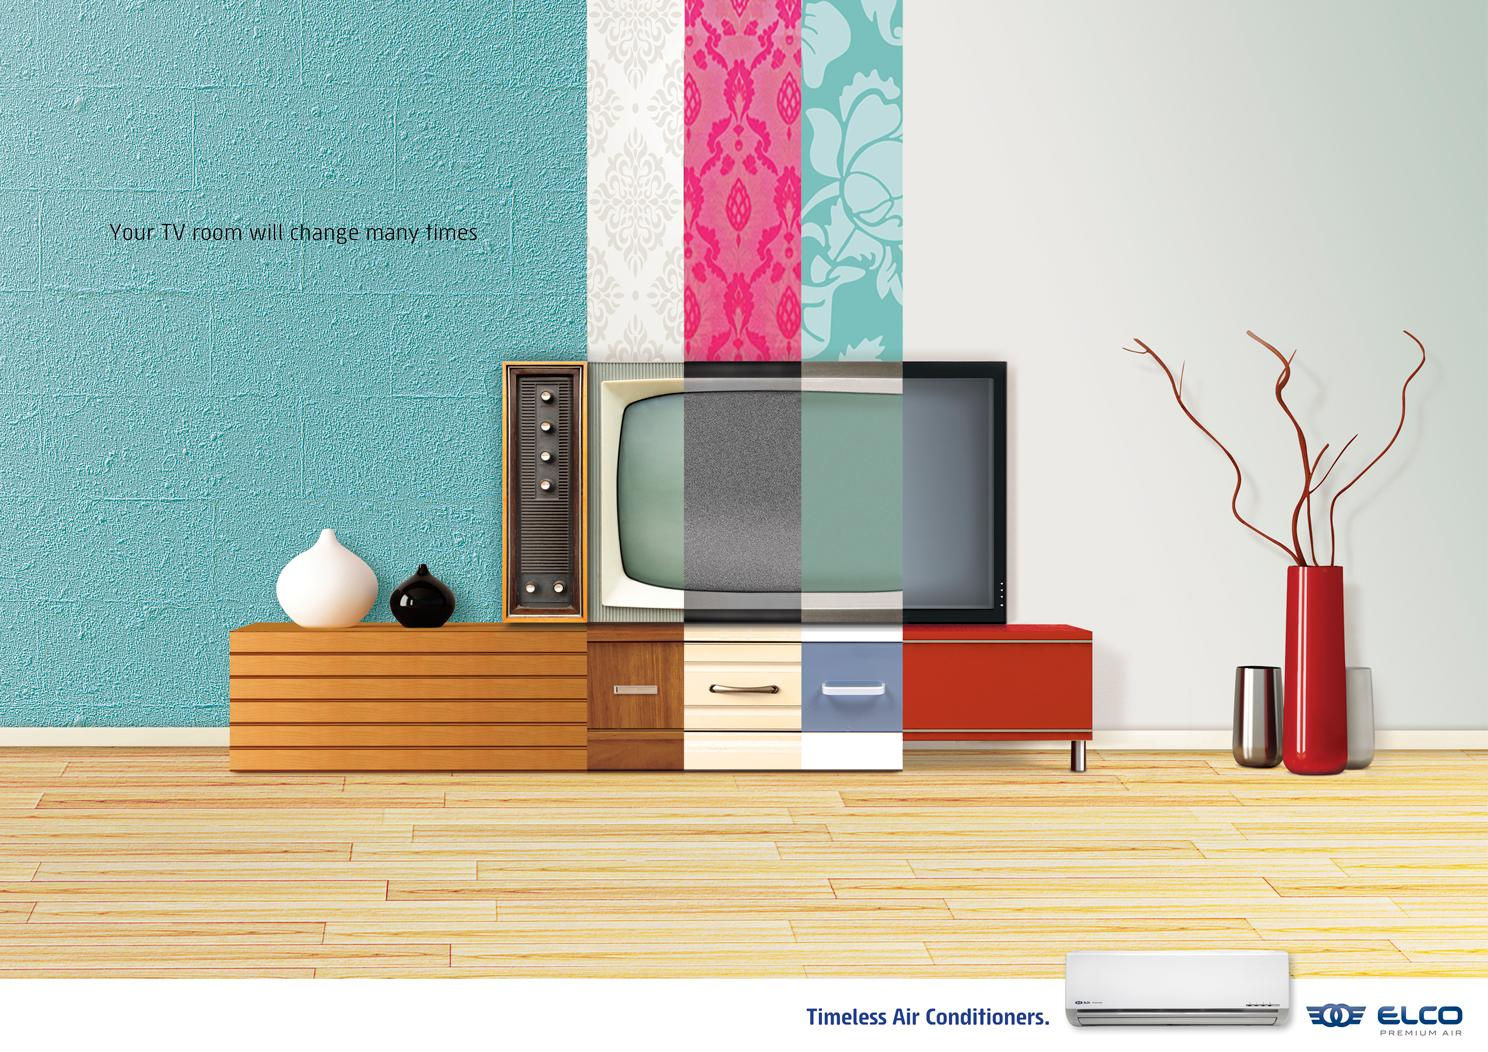 ELCO Premium Air Print Ad -  TV room